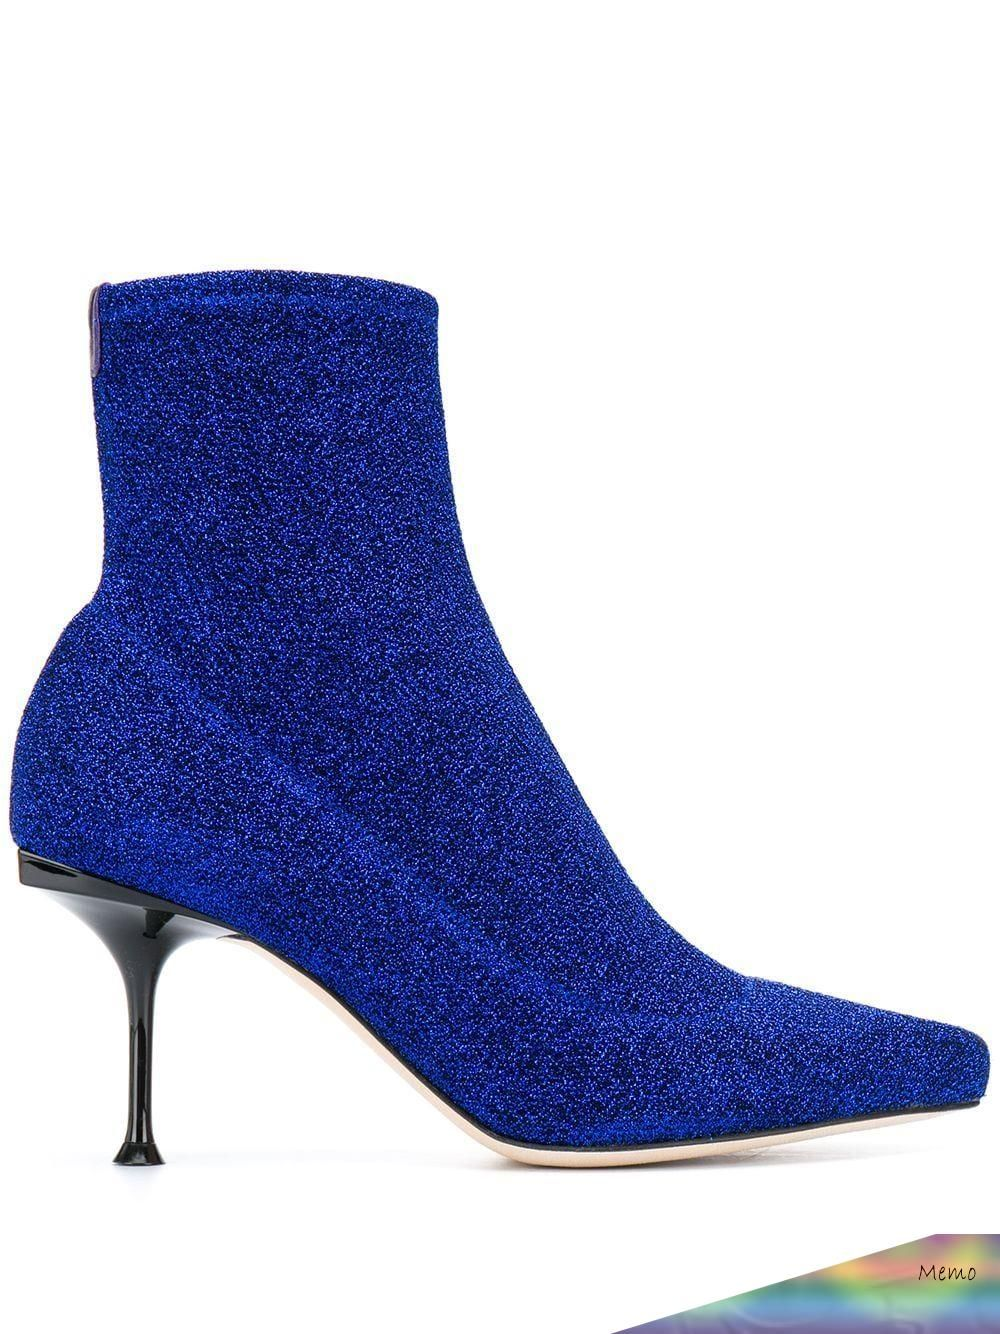 2020 - Royal blue leather sock boots